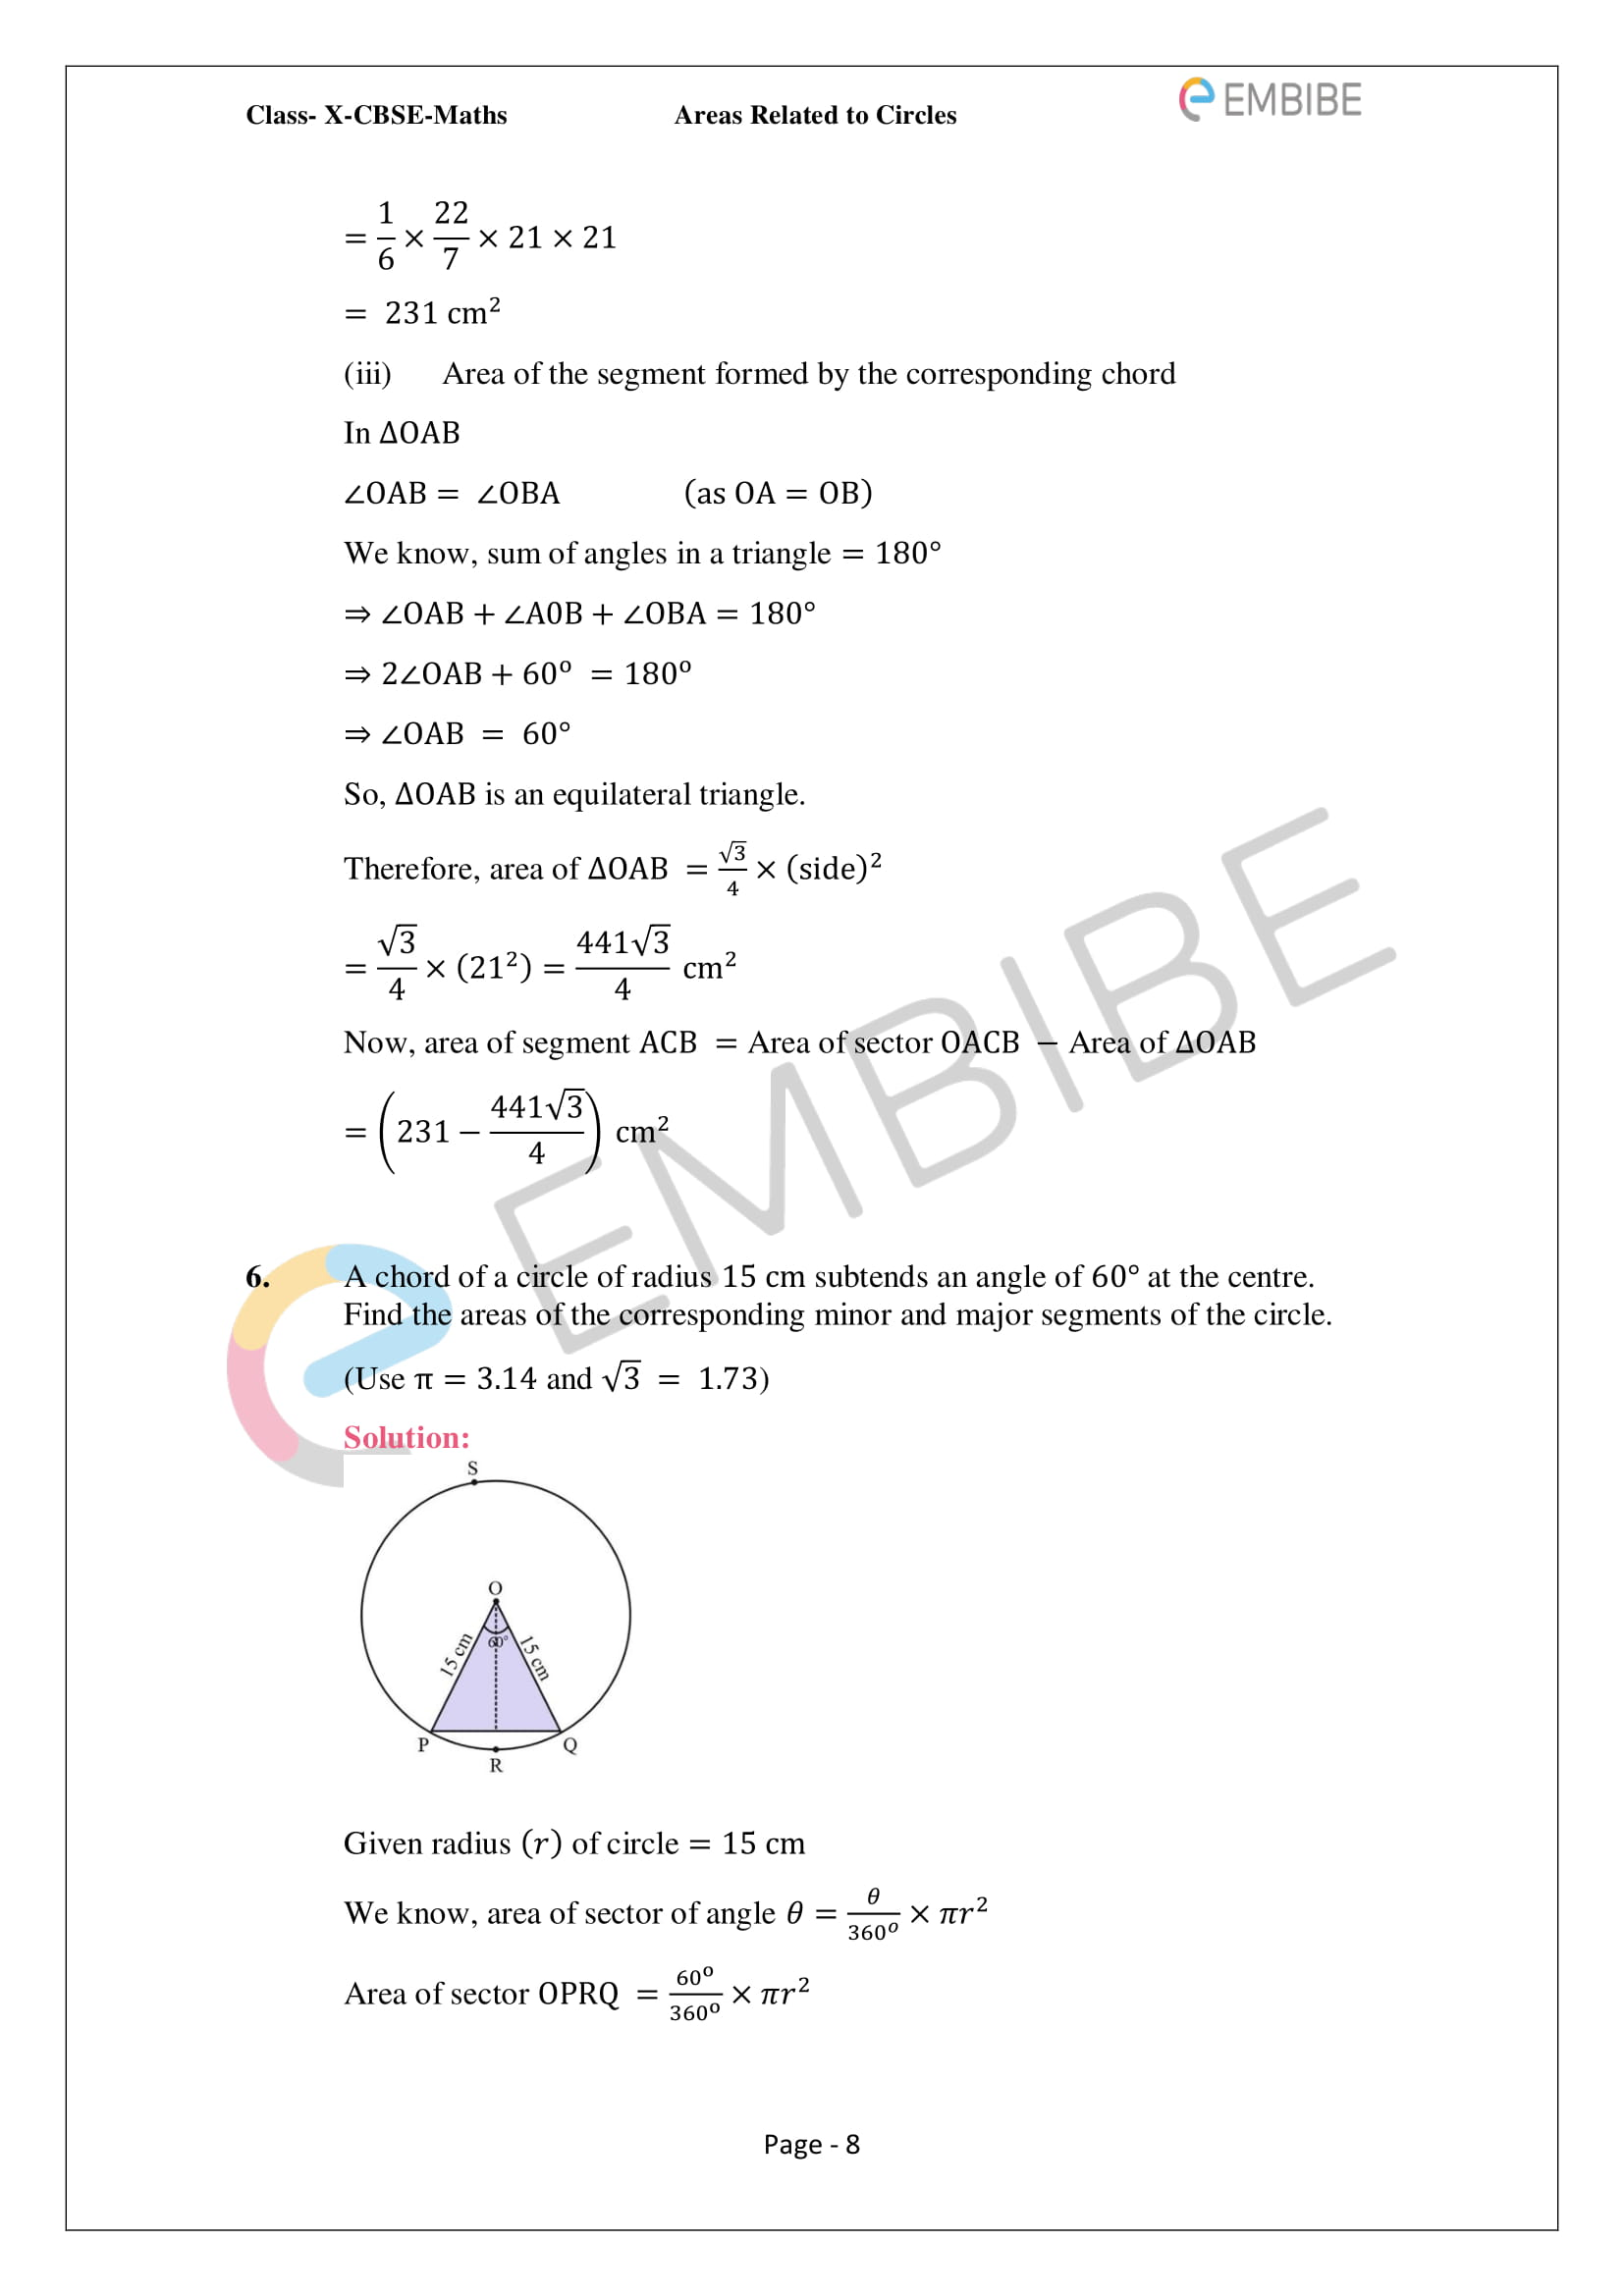 CBSE NCERT Solutions For Class 10 Maths Chapter 12 - Areas Related To Circle - 8